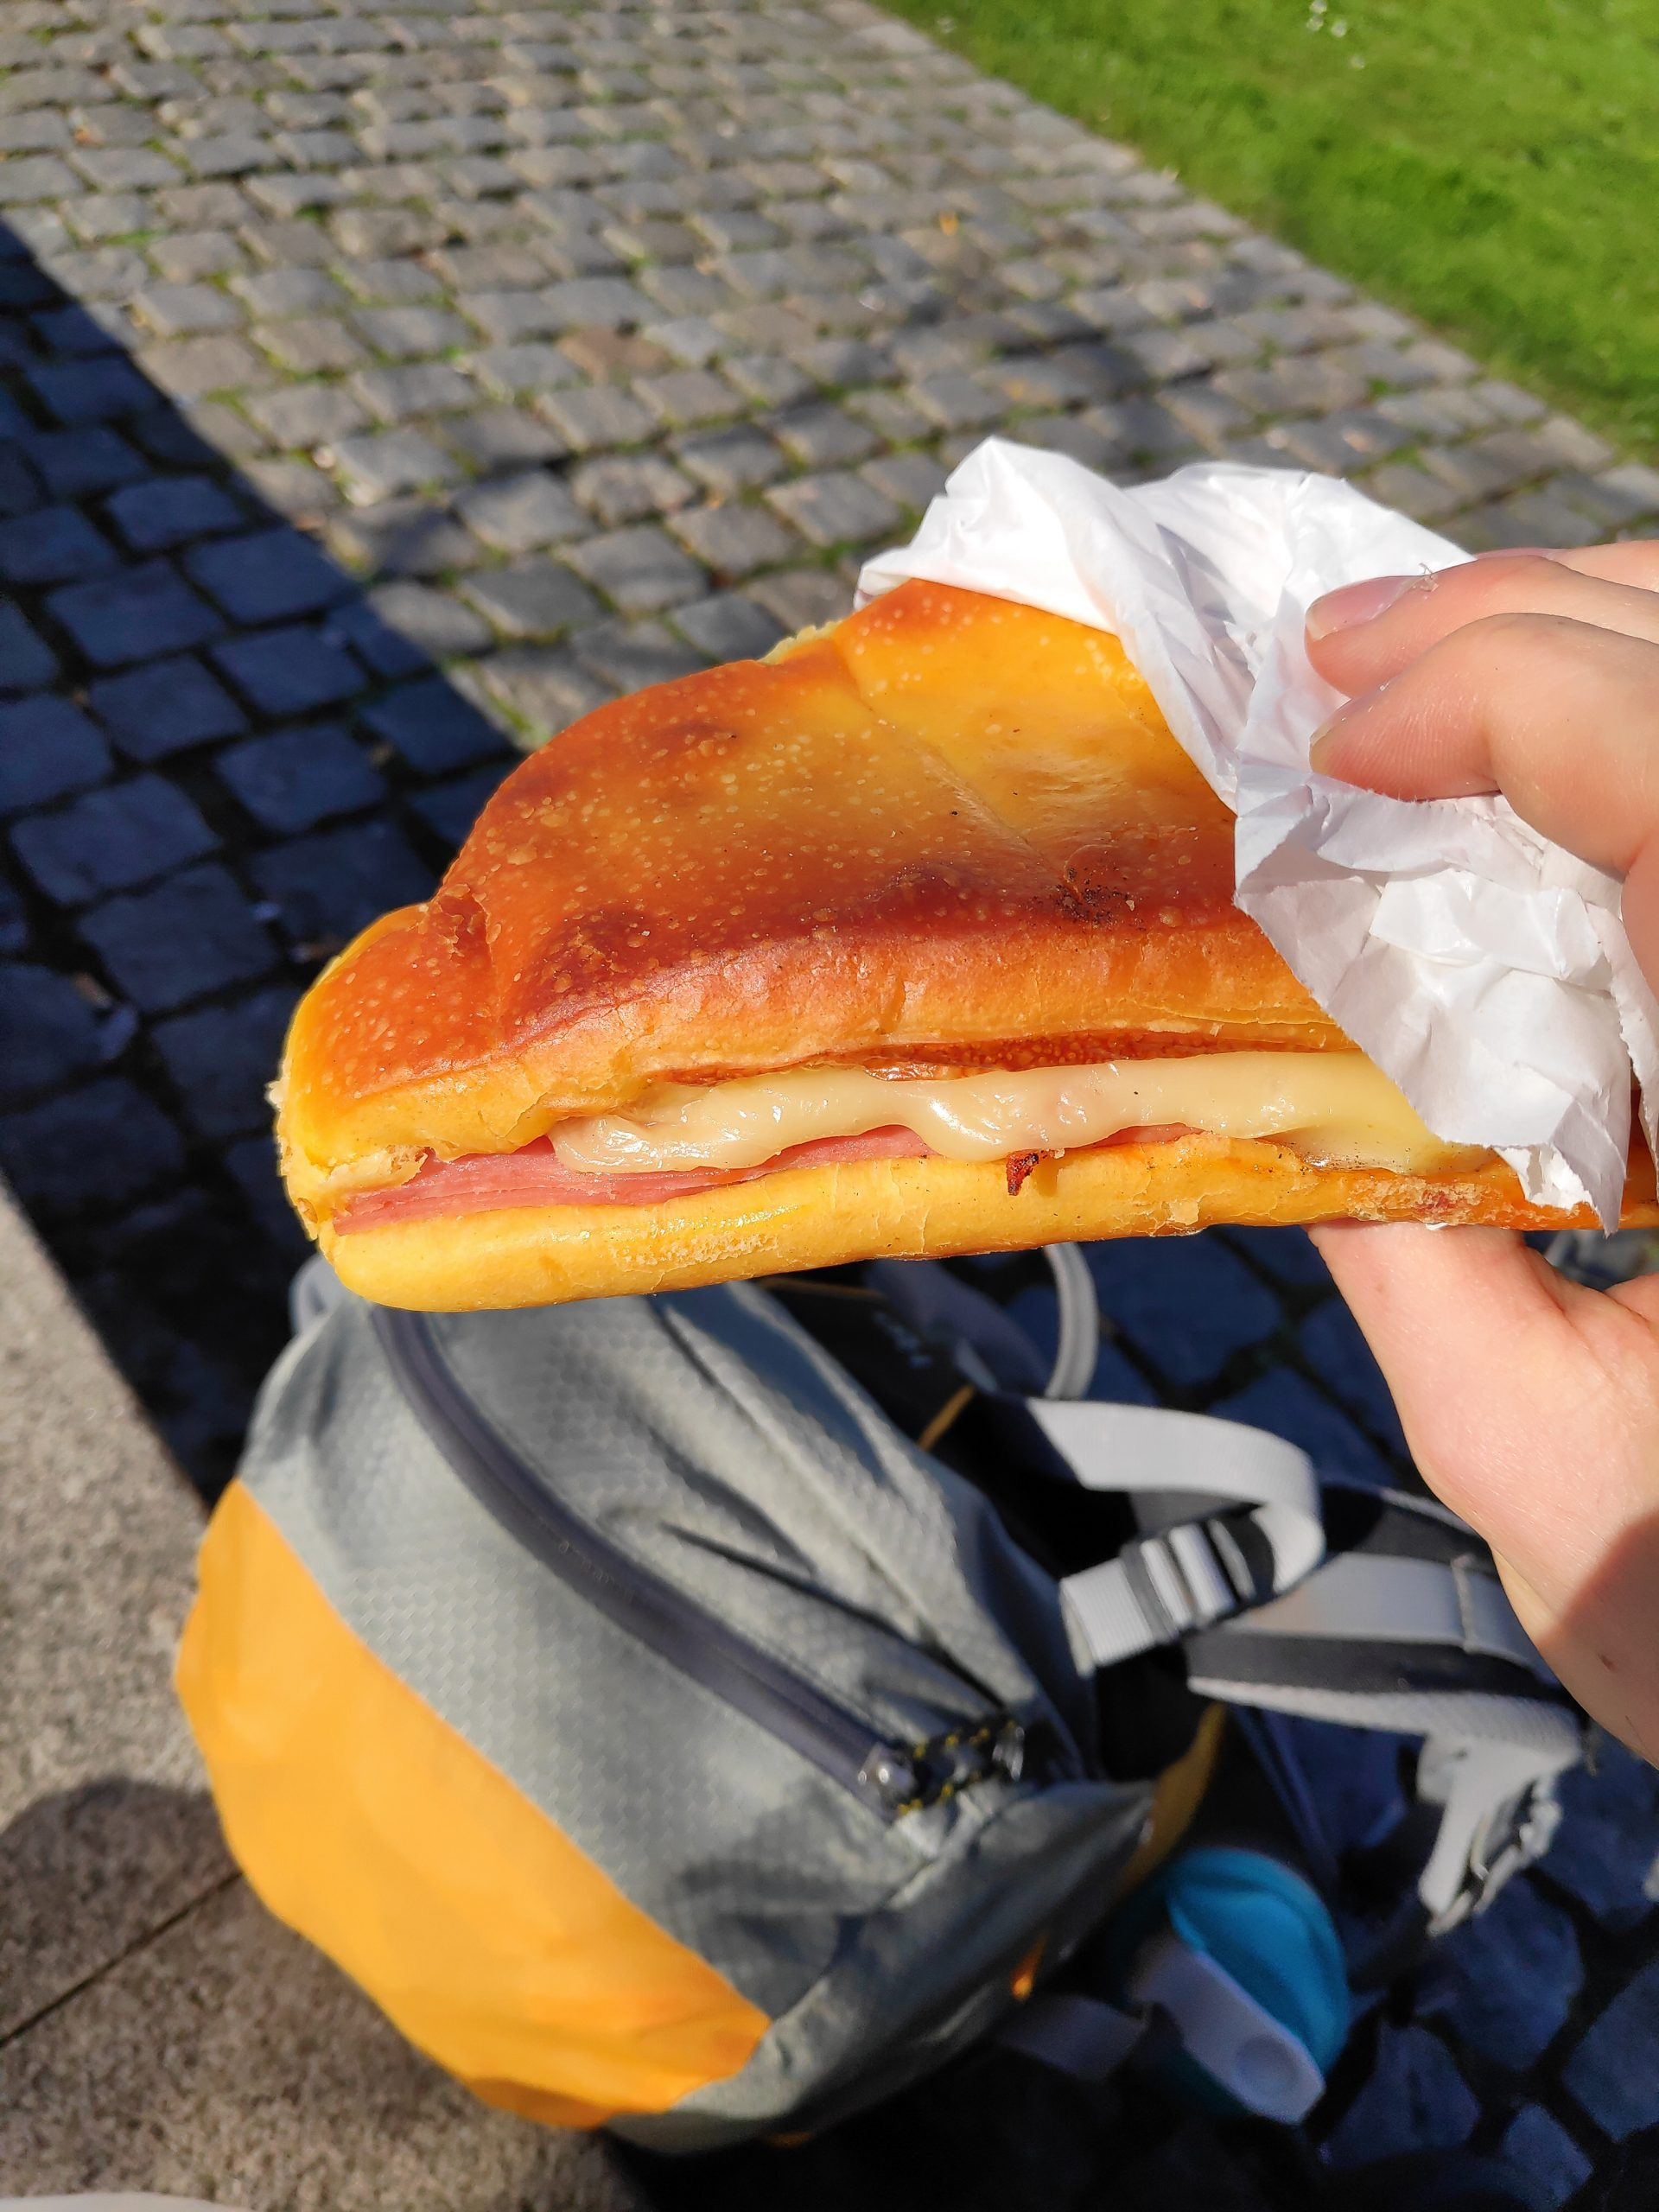 Desert or sandwich? Sweet pastry with ham and cheese.